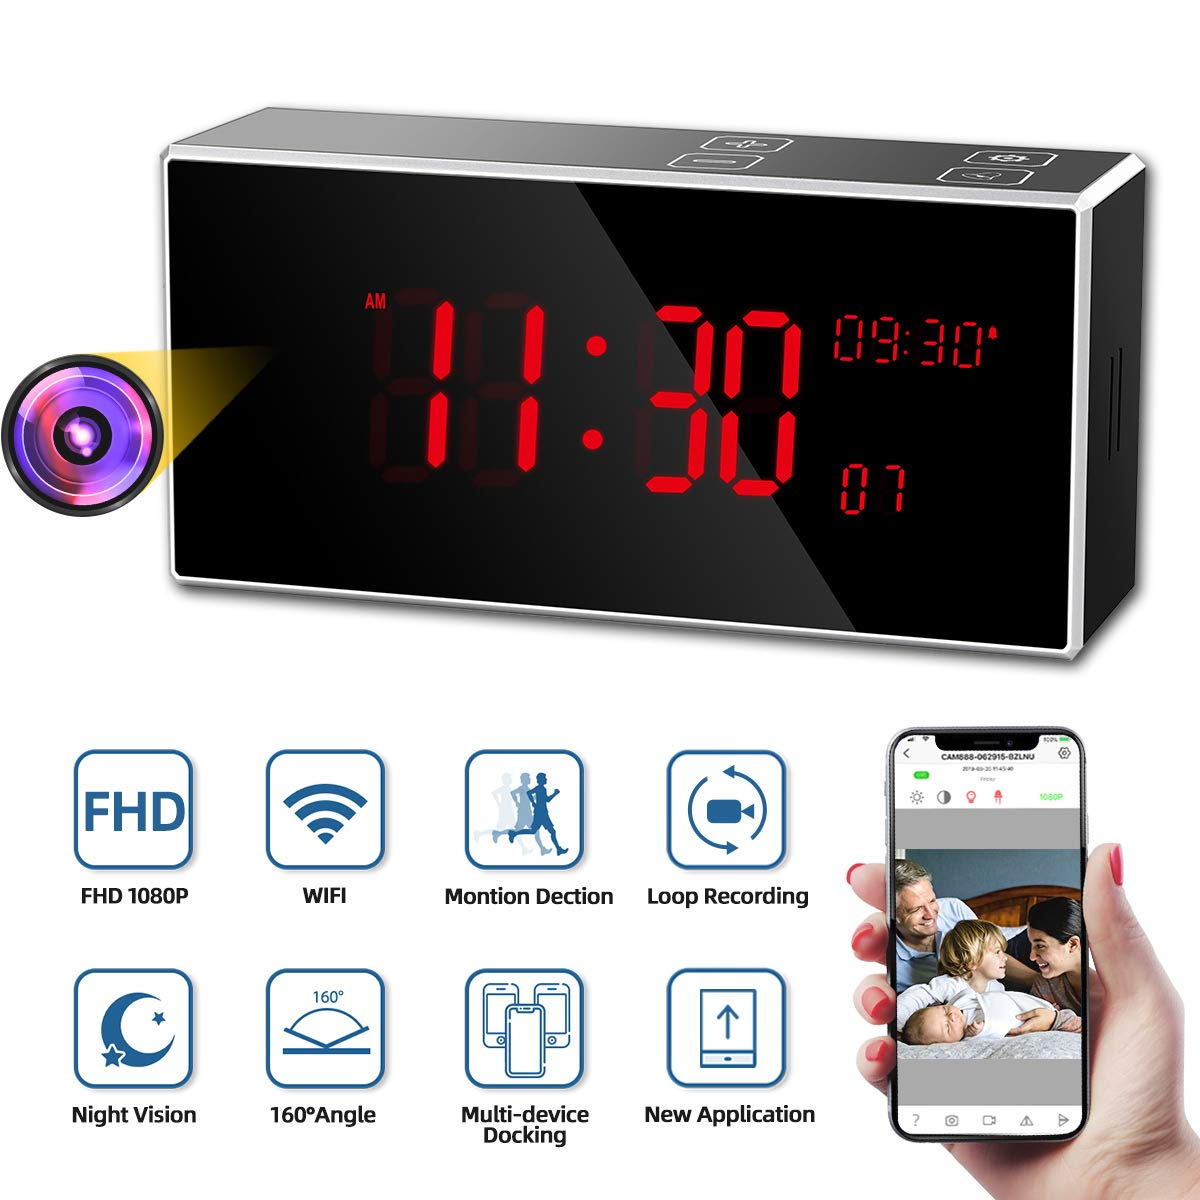 Hidden Camera, Monja PRO Spy Camera Clock, Real 1080P WiFi Cameras for Home, 160°Angle Wireless Nanny Cam, Superior 33FT IR Night Vision, Monitoring Detection, Loop Recording for Indoor Home Security by Monja